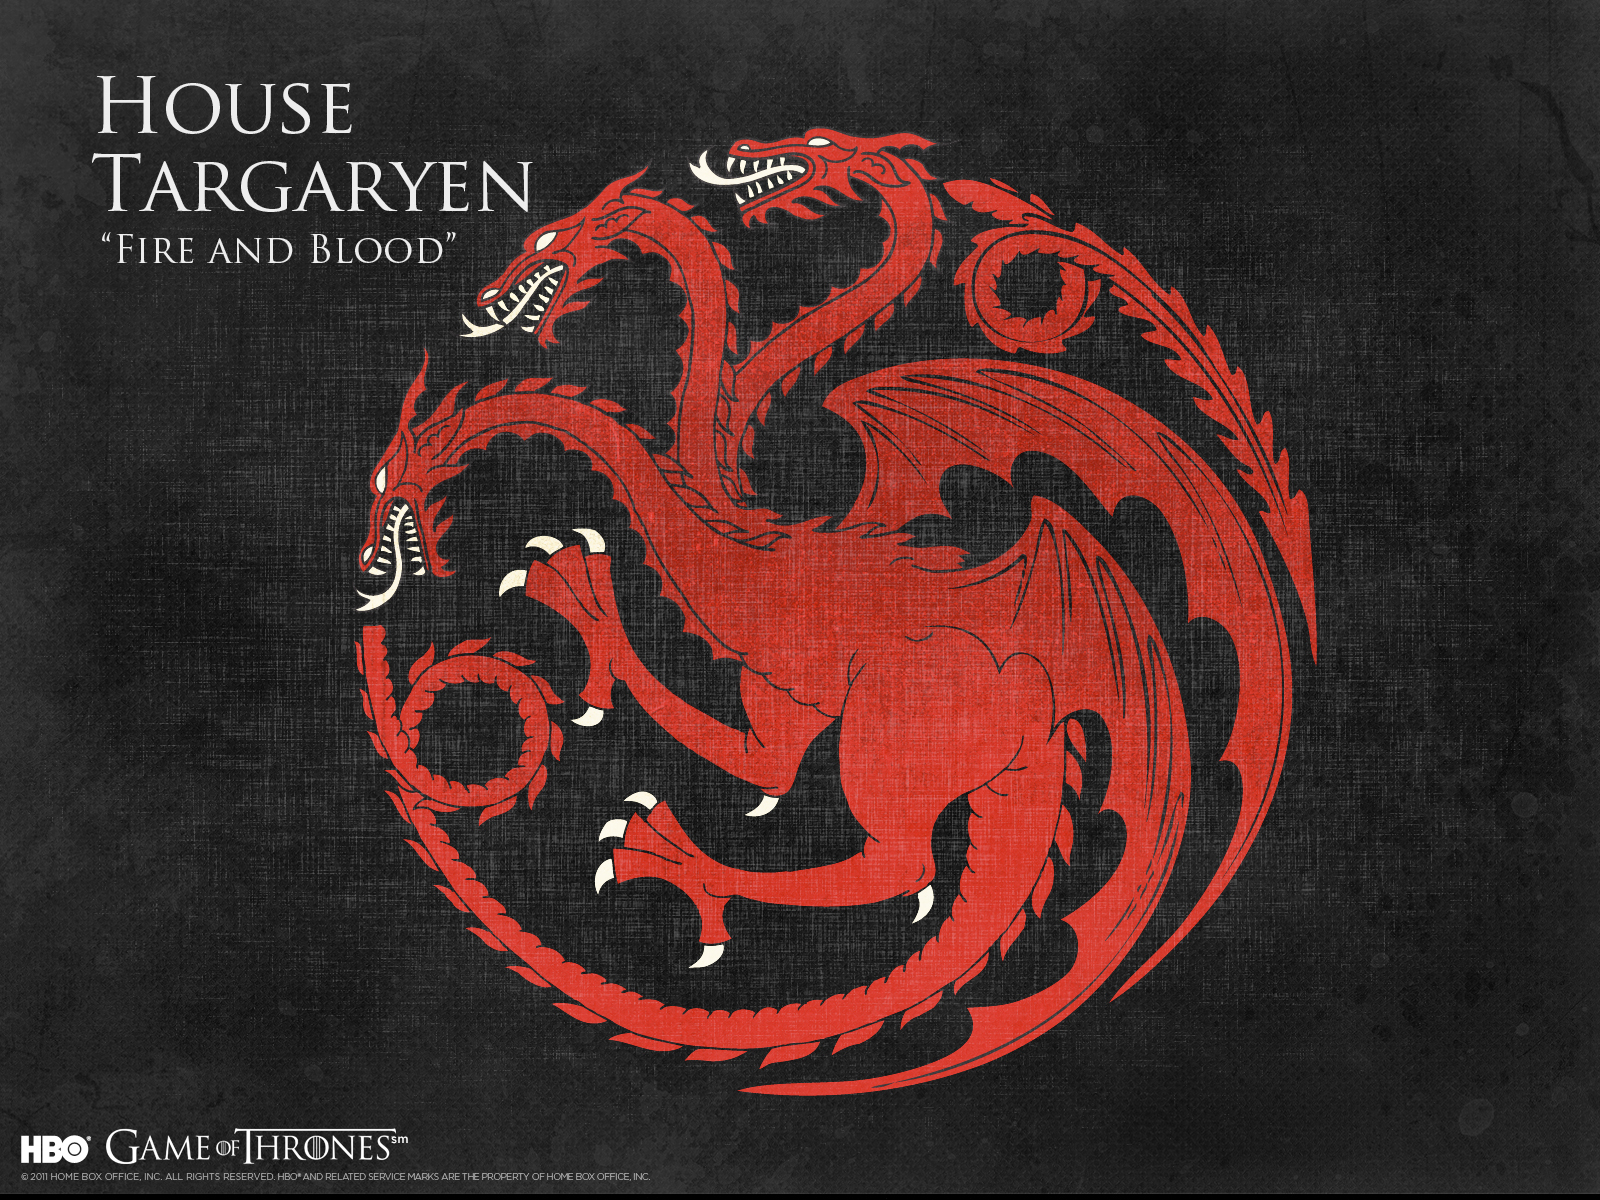 House-Targaryen-game-of-thrones-21729447-1600-1200.jpg